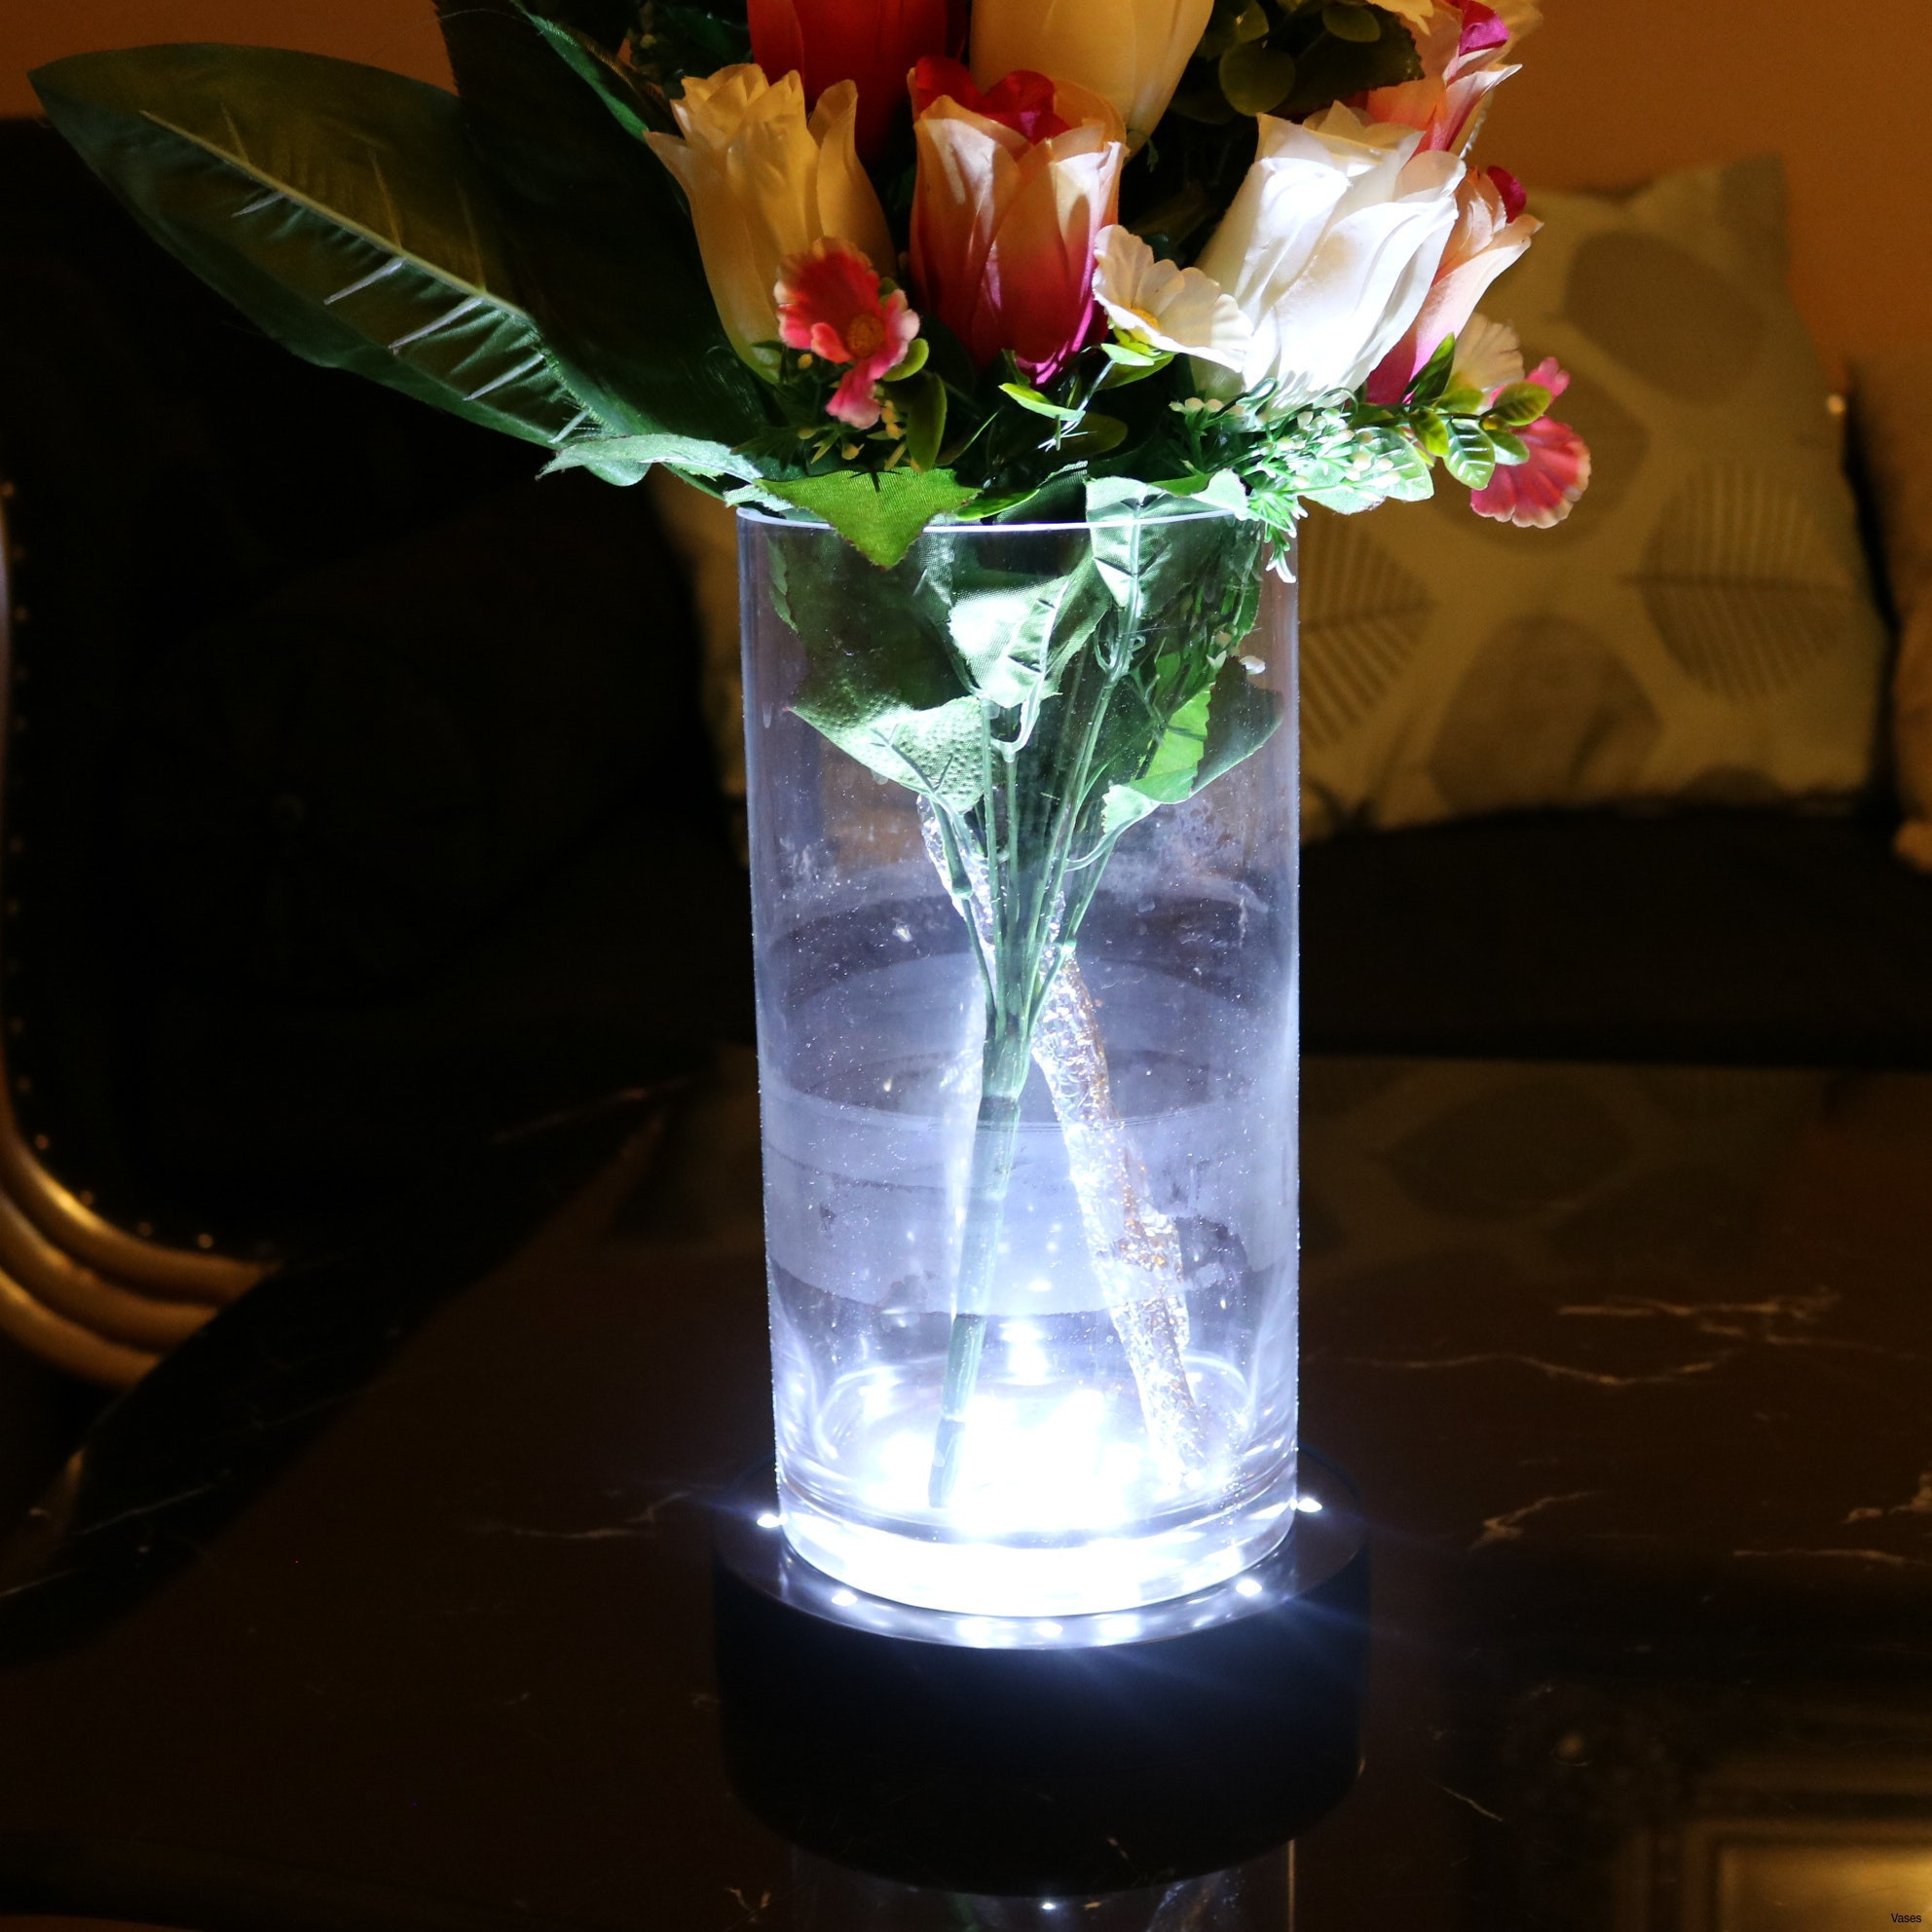 flowers with vase included of green flower vase pictures vases disposable plastic single cheap within green flower vase pictures vases disposable plastic single cheap flower rose vasei 0d design